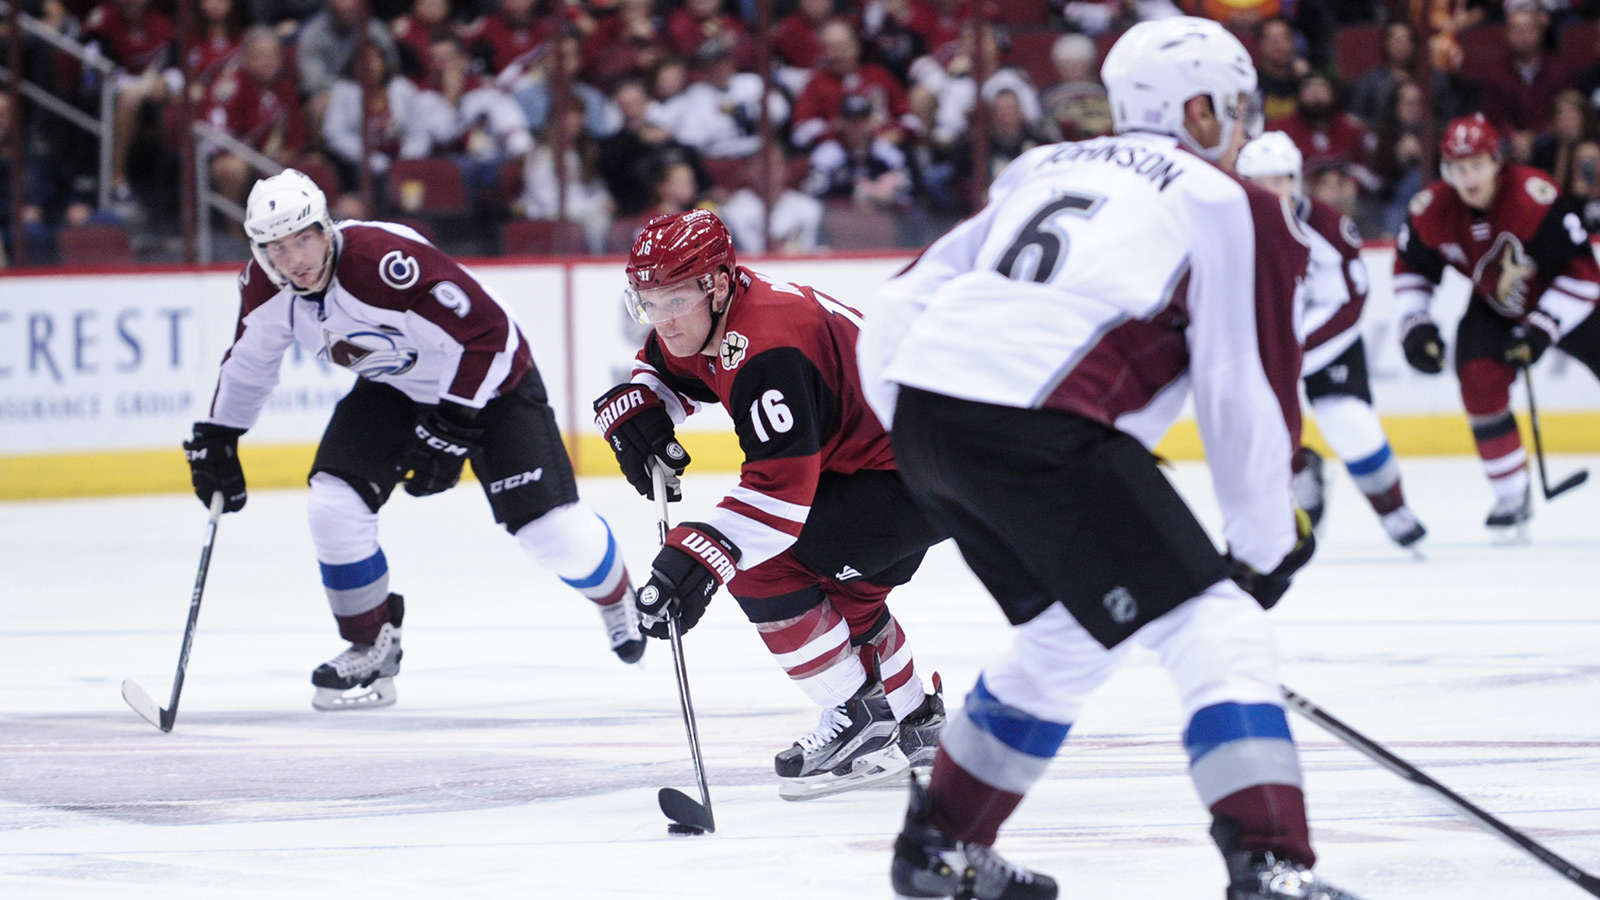 Coyotes expect stronger effort tonight vs. Avalanche